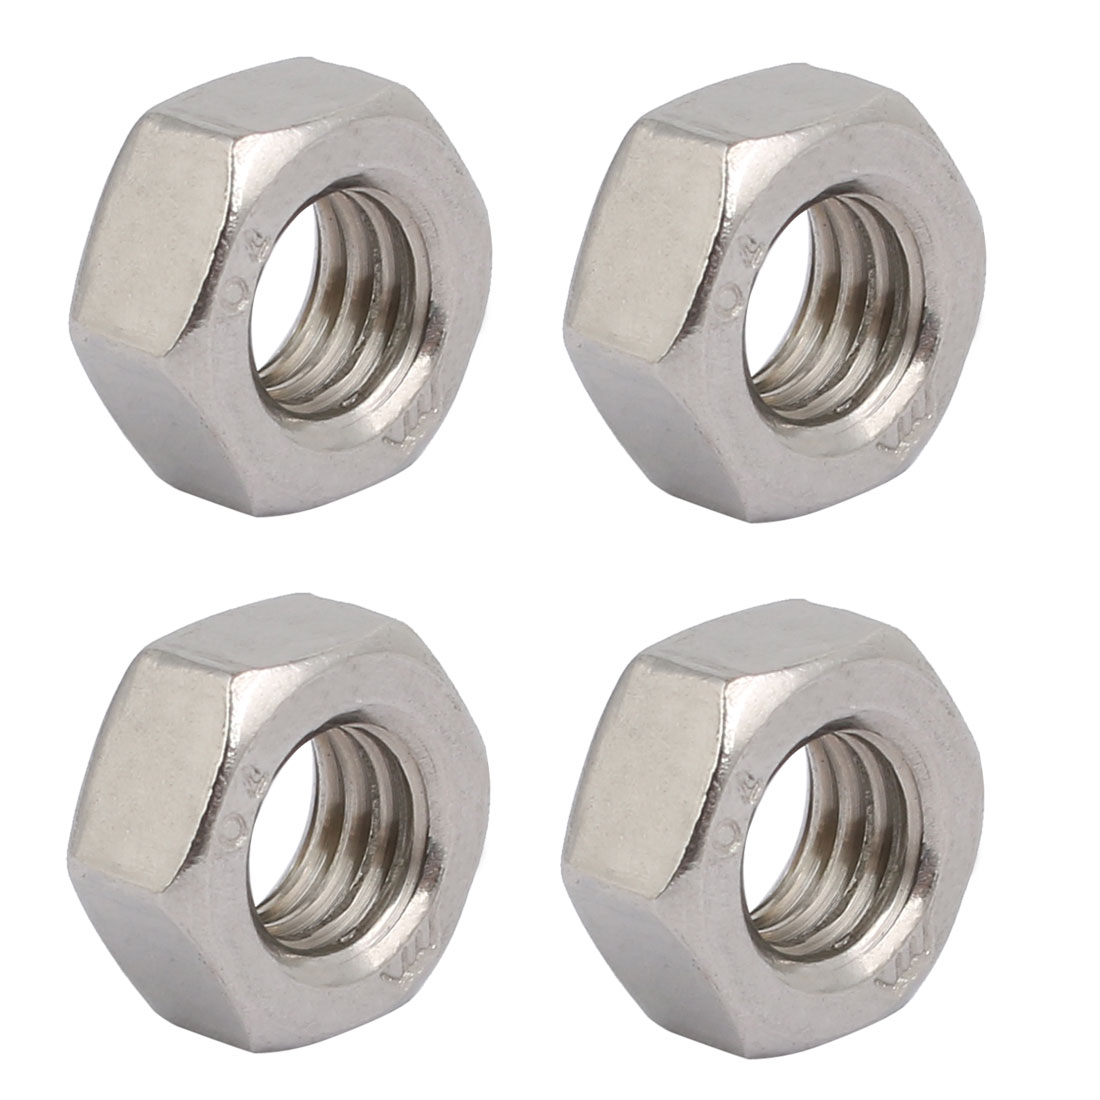 4pcs M8 x 1.25mm Pitch Metric Thread 201 Stainless Steel Left Hand Hex Nuts